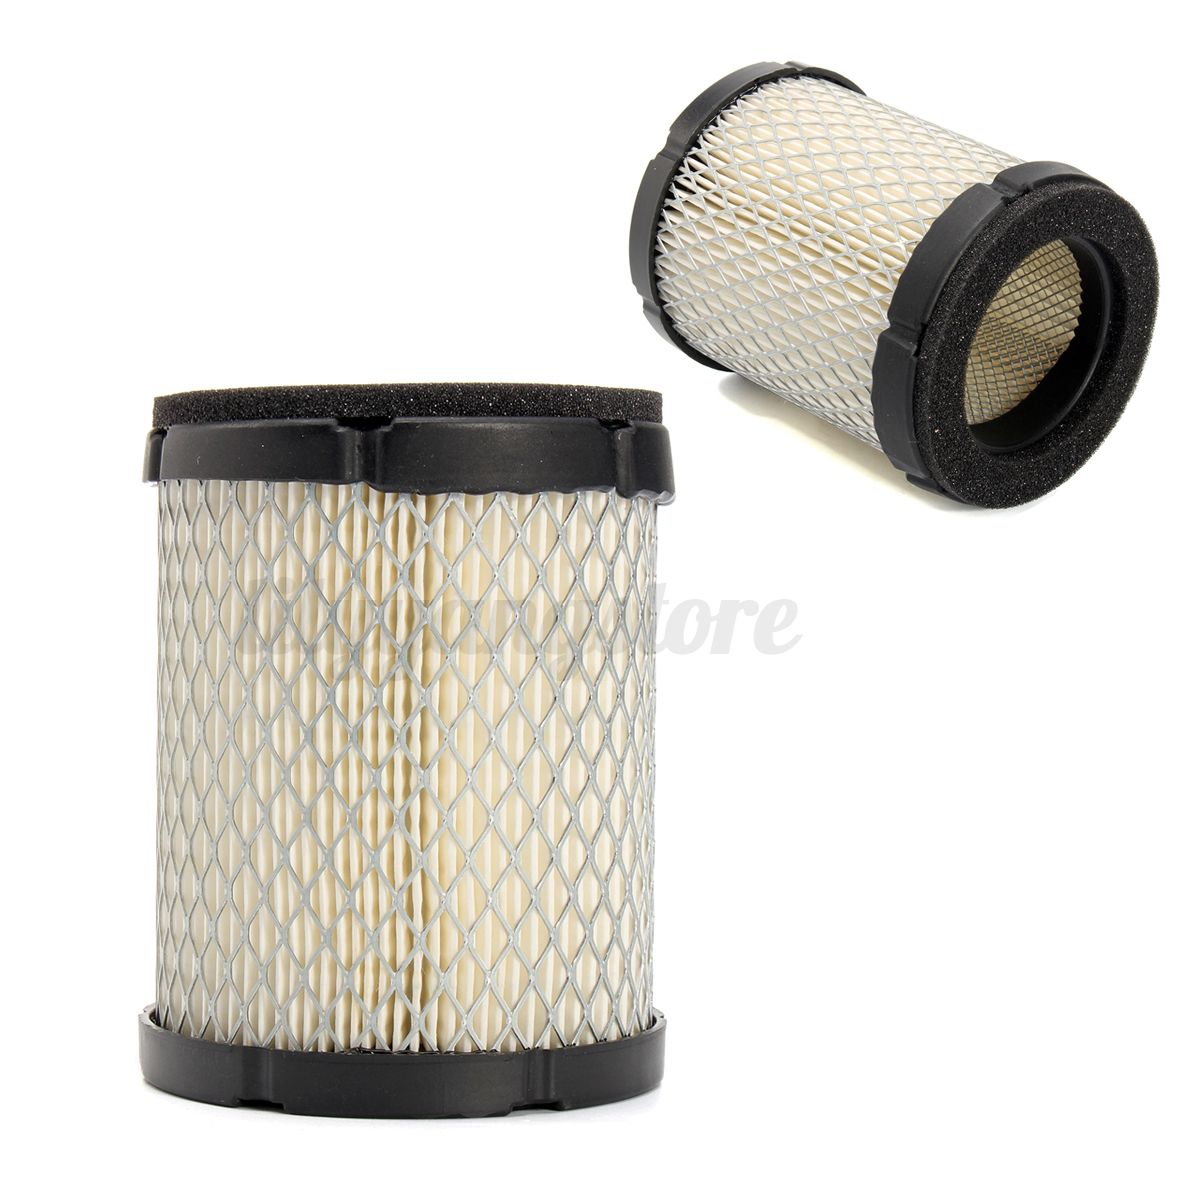 Onan Microquiet 4000 Parts List: Air Filter 140-3280 Made For ONAN Fits 3600 4000